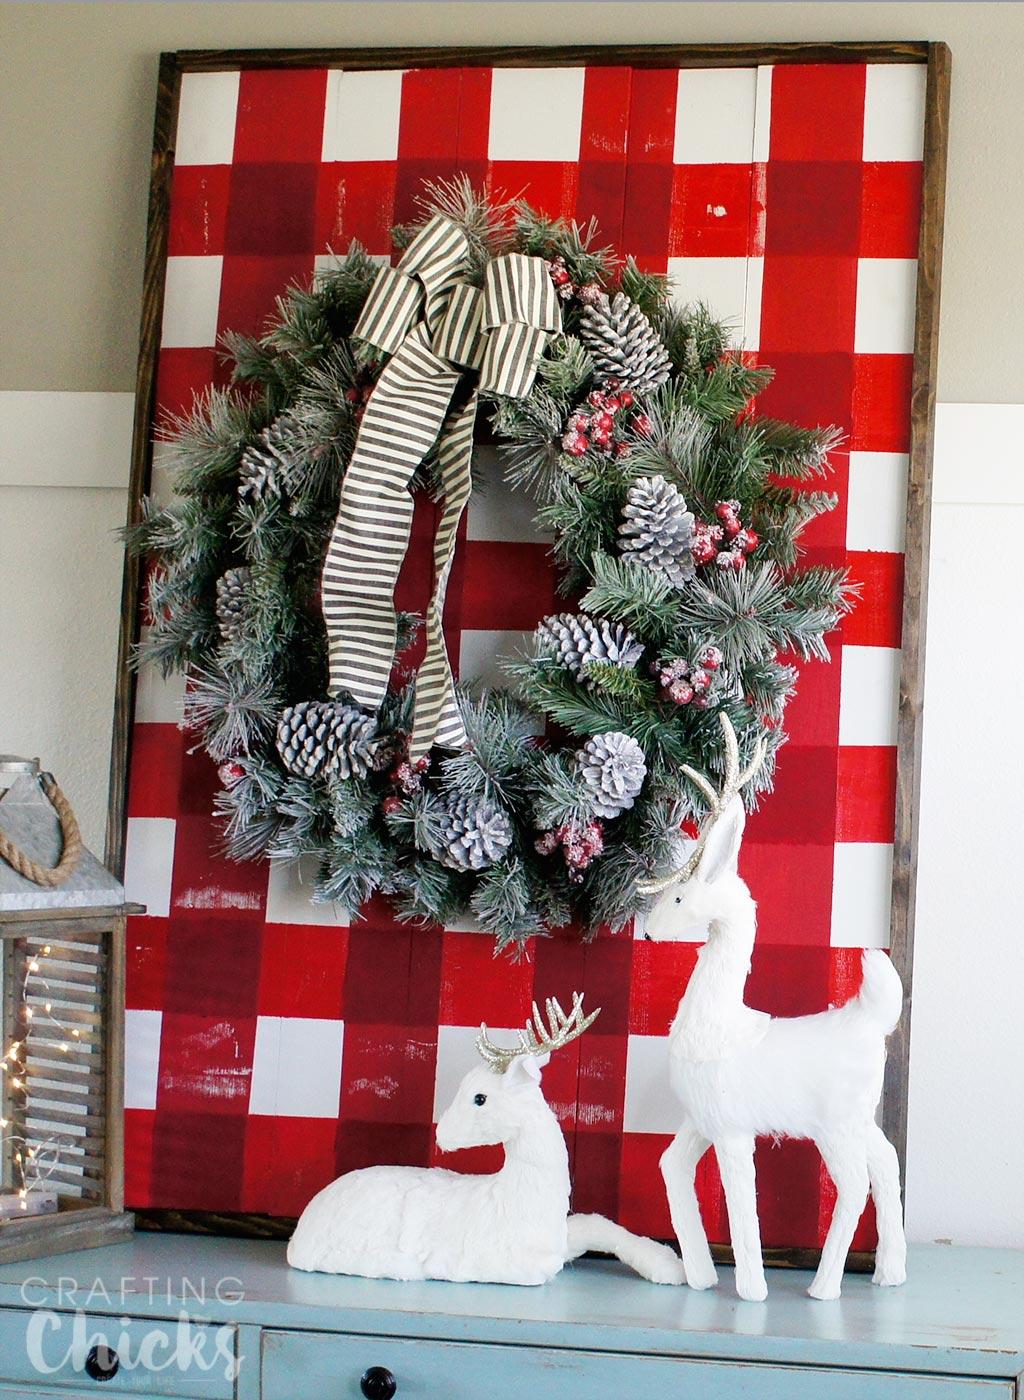 Wooden Plank Display with The Home Depot - The Crafting Chicks